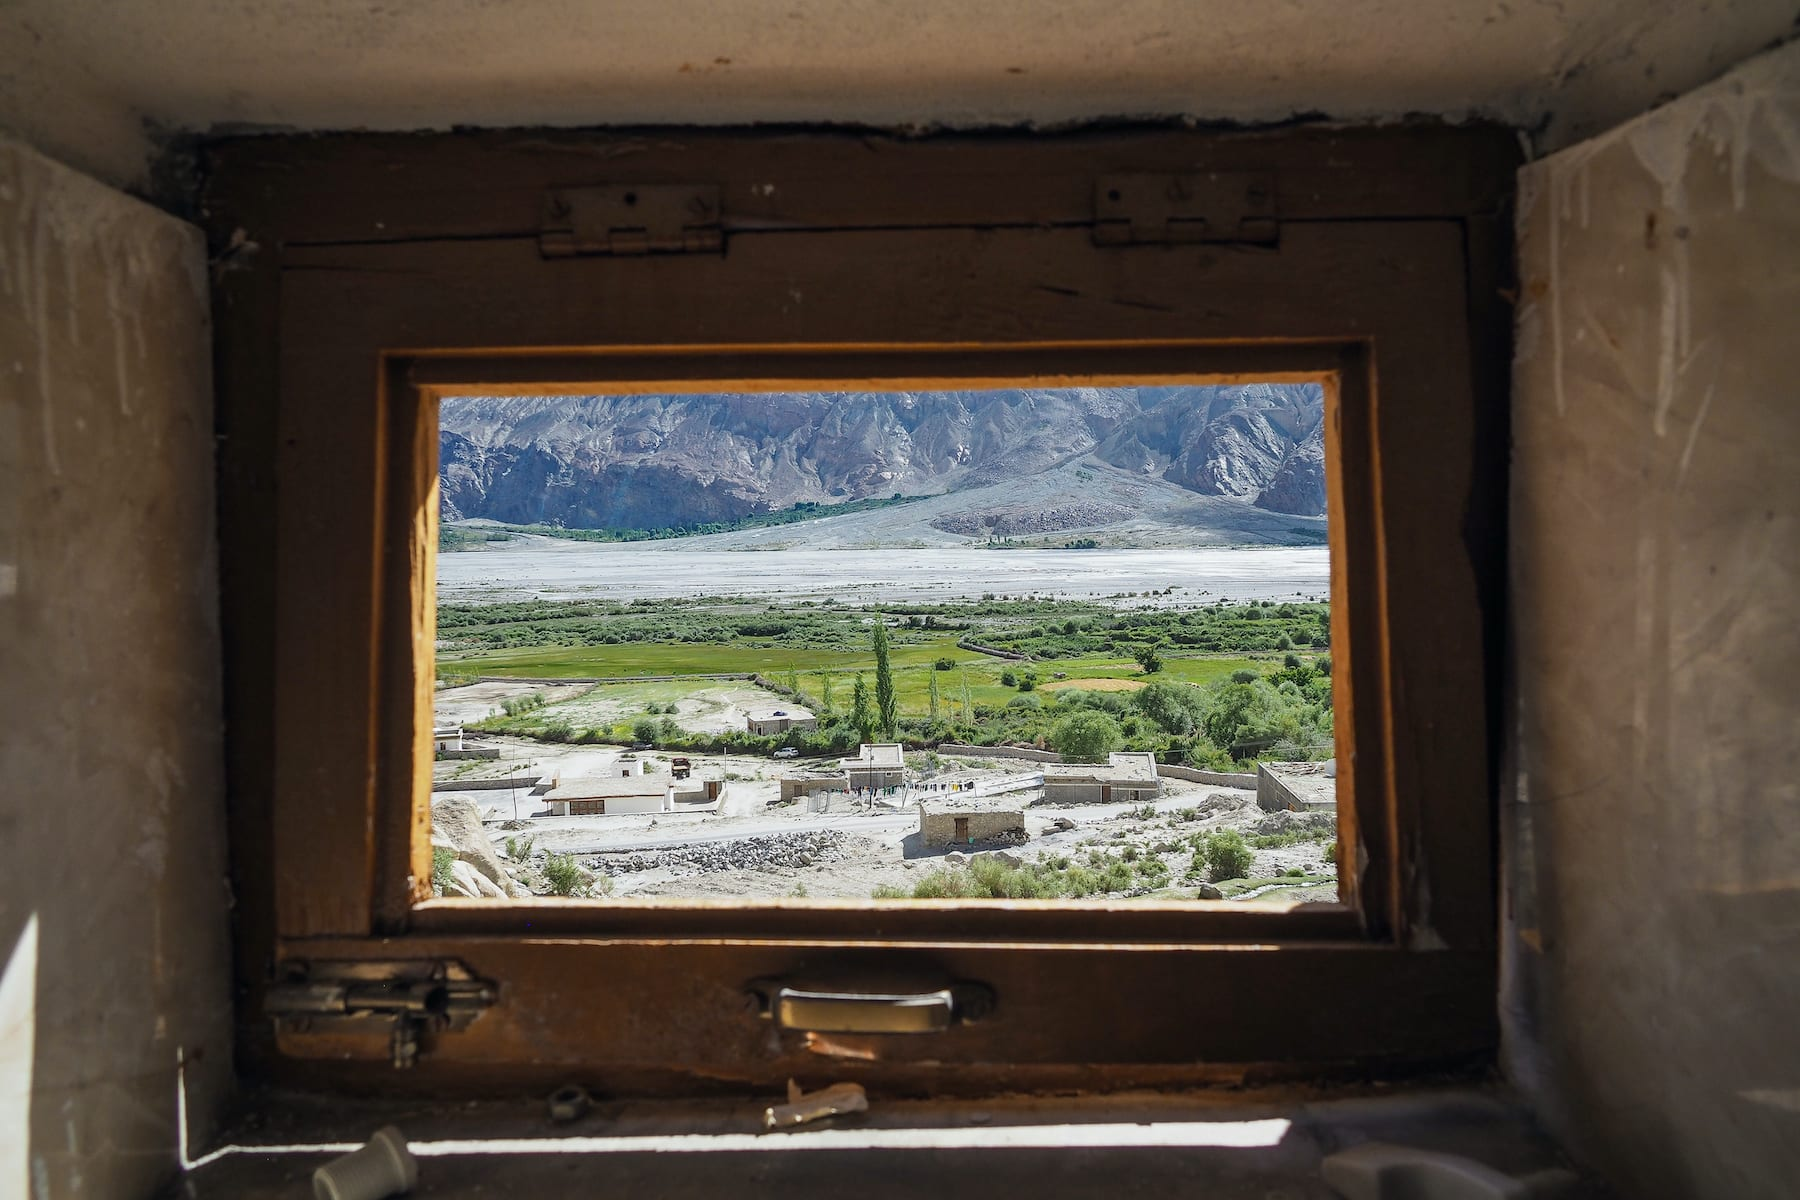 Most dry toilets have a small window to let in light and some air. This window overlooks mountains of the Nubra valley. Interestingly, according to locals and experts, the demand for water-based toilets seems to come more from domestic tourists than foreigners. Photo: Nipshutter/Shutterstock